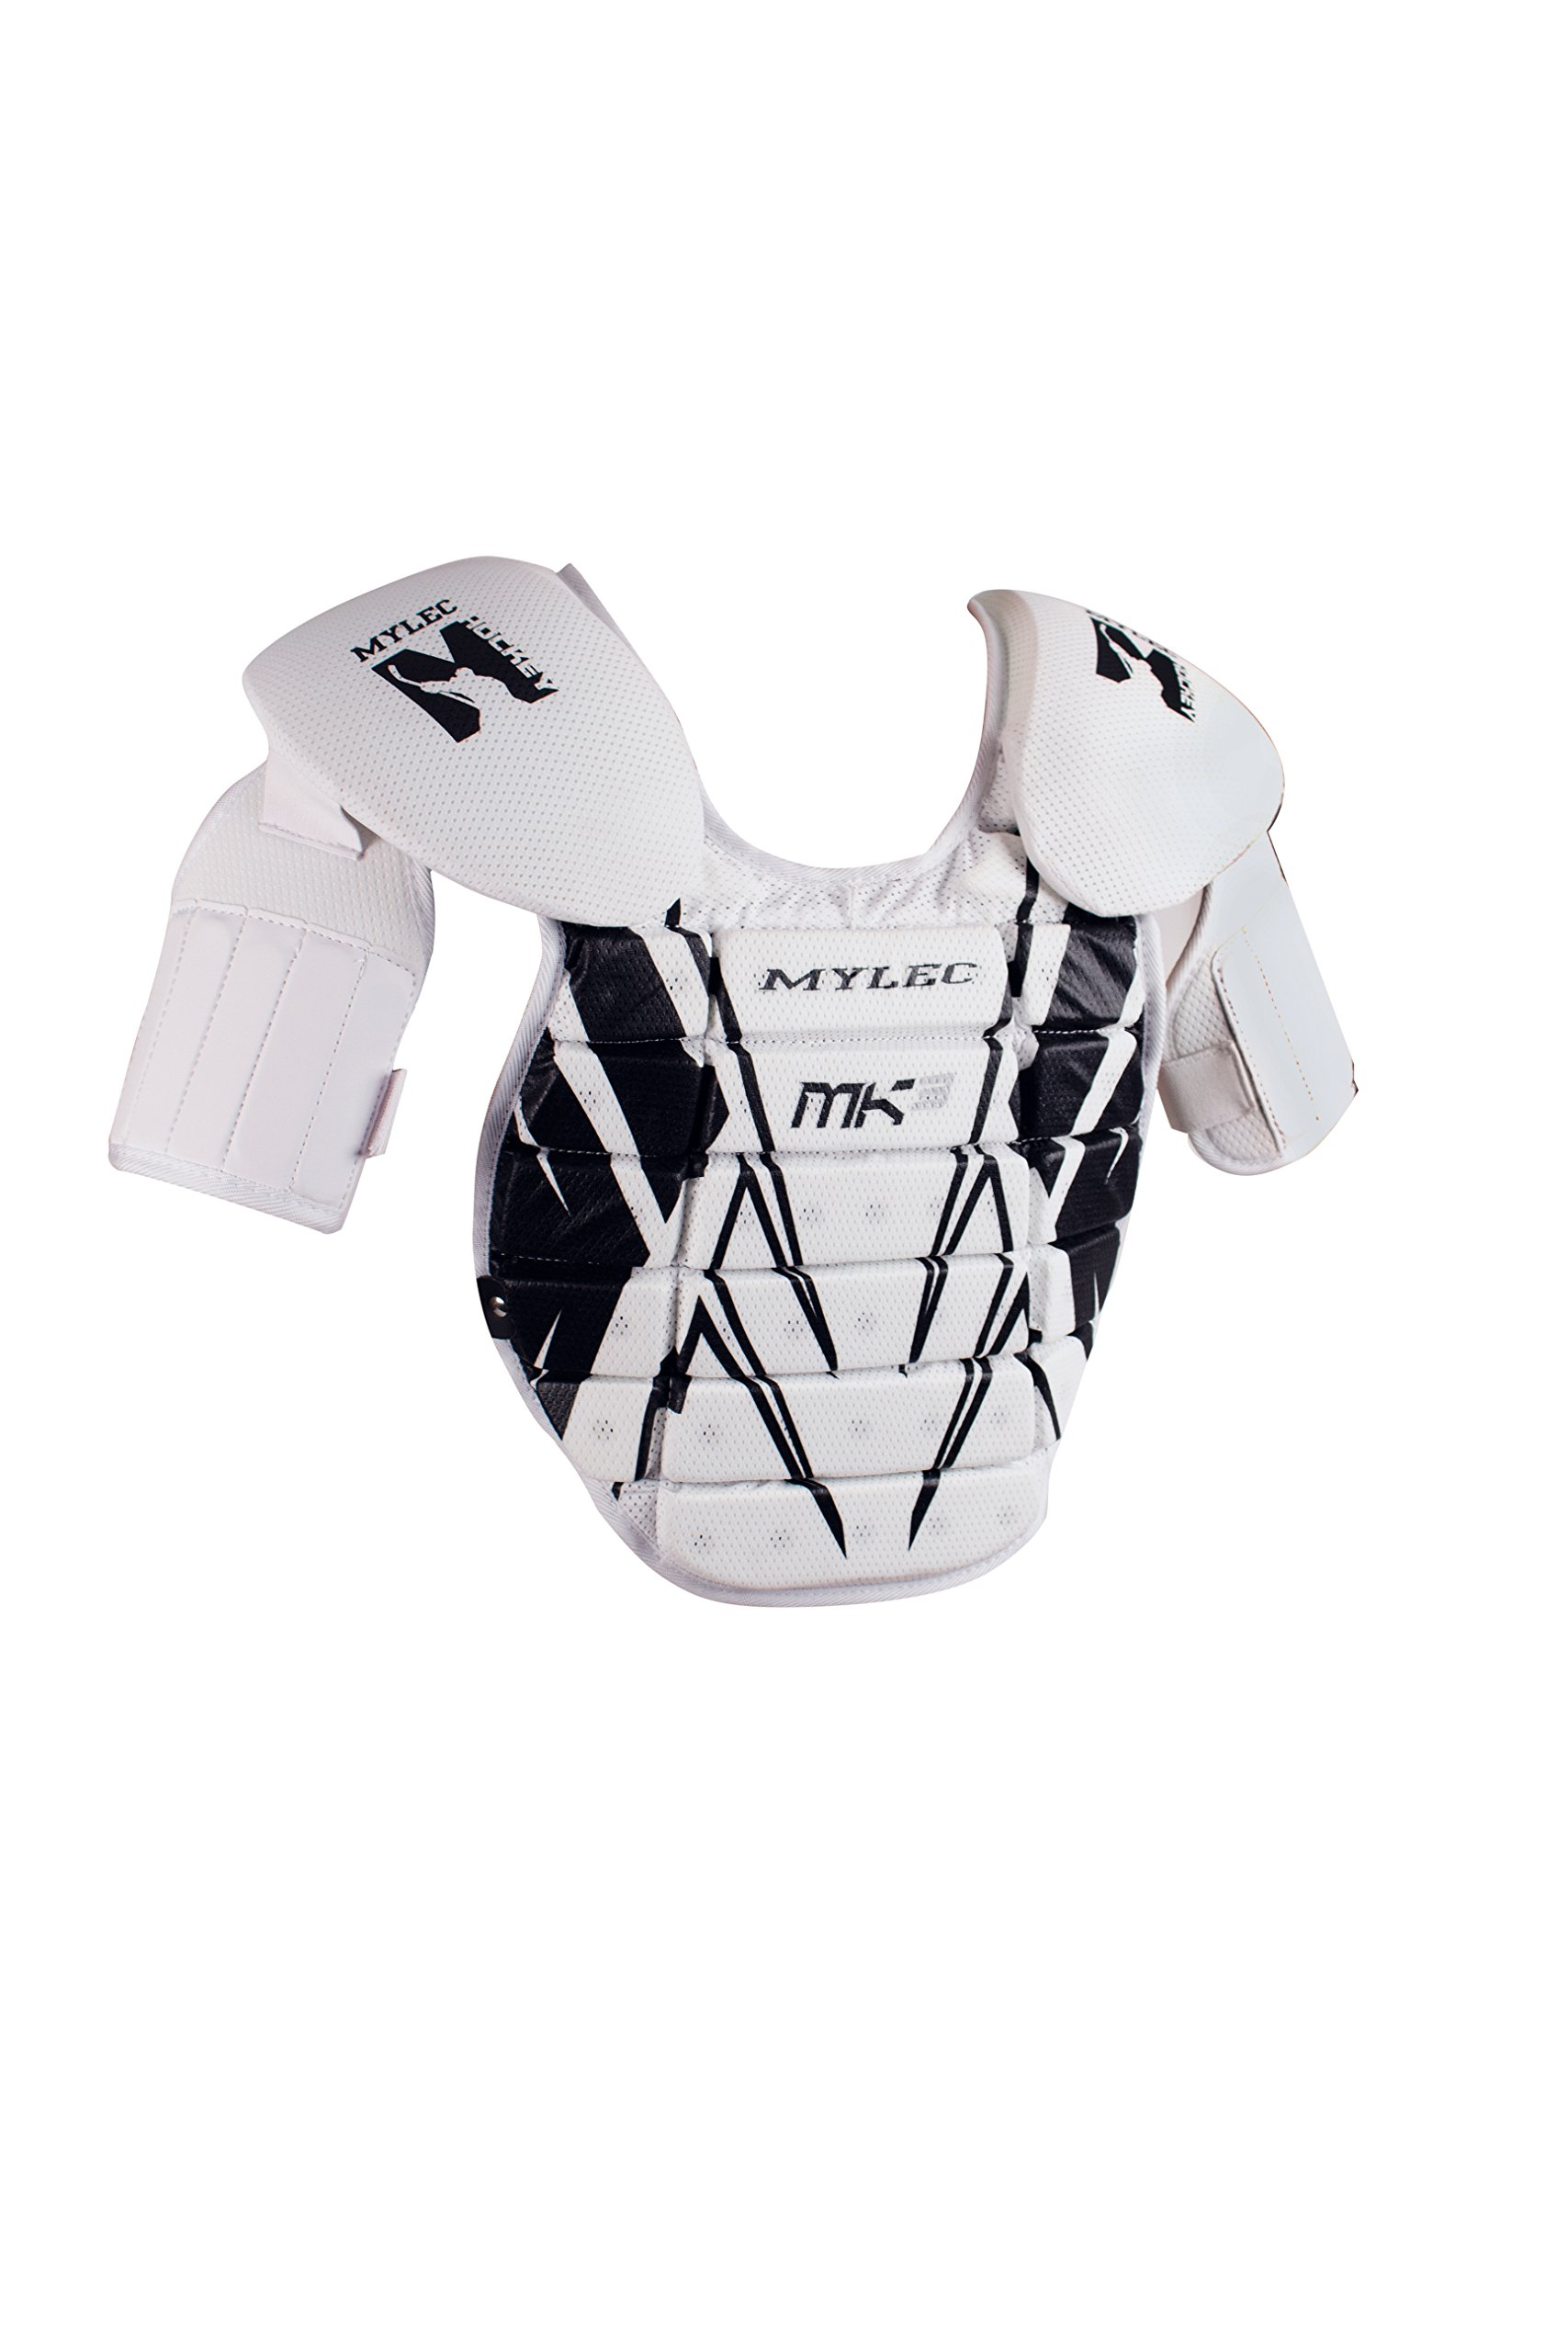 Mylec MK3 Chest Protector - Youth